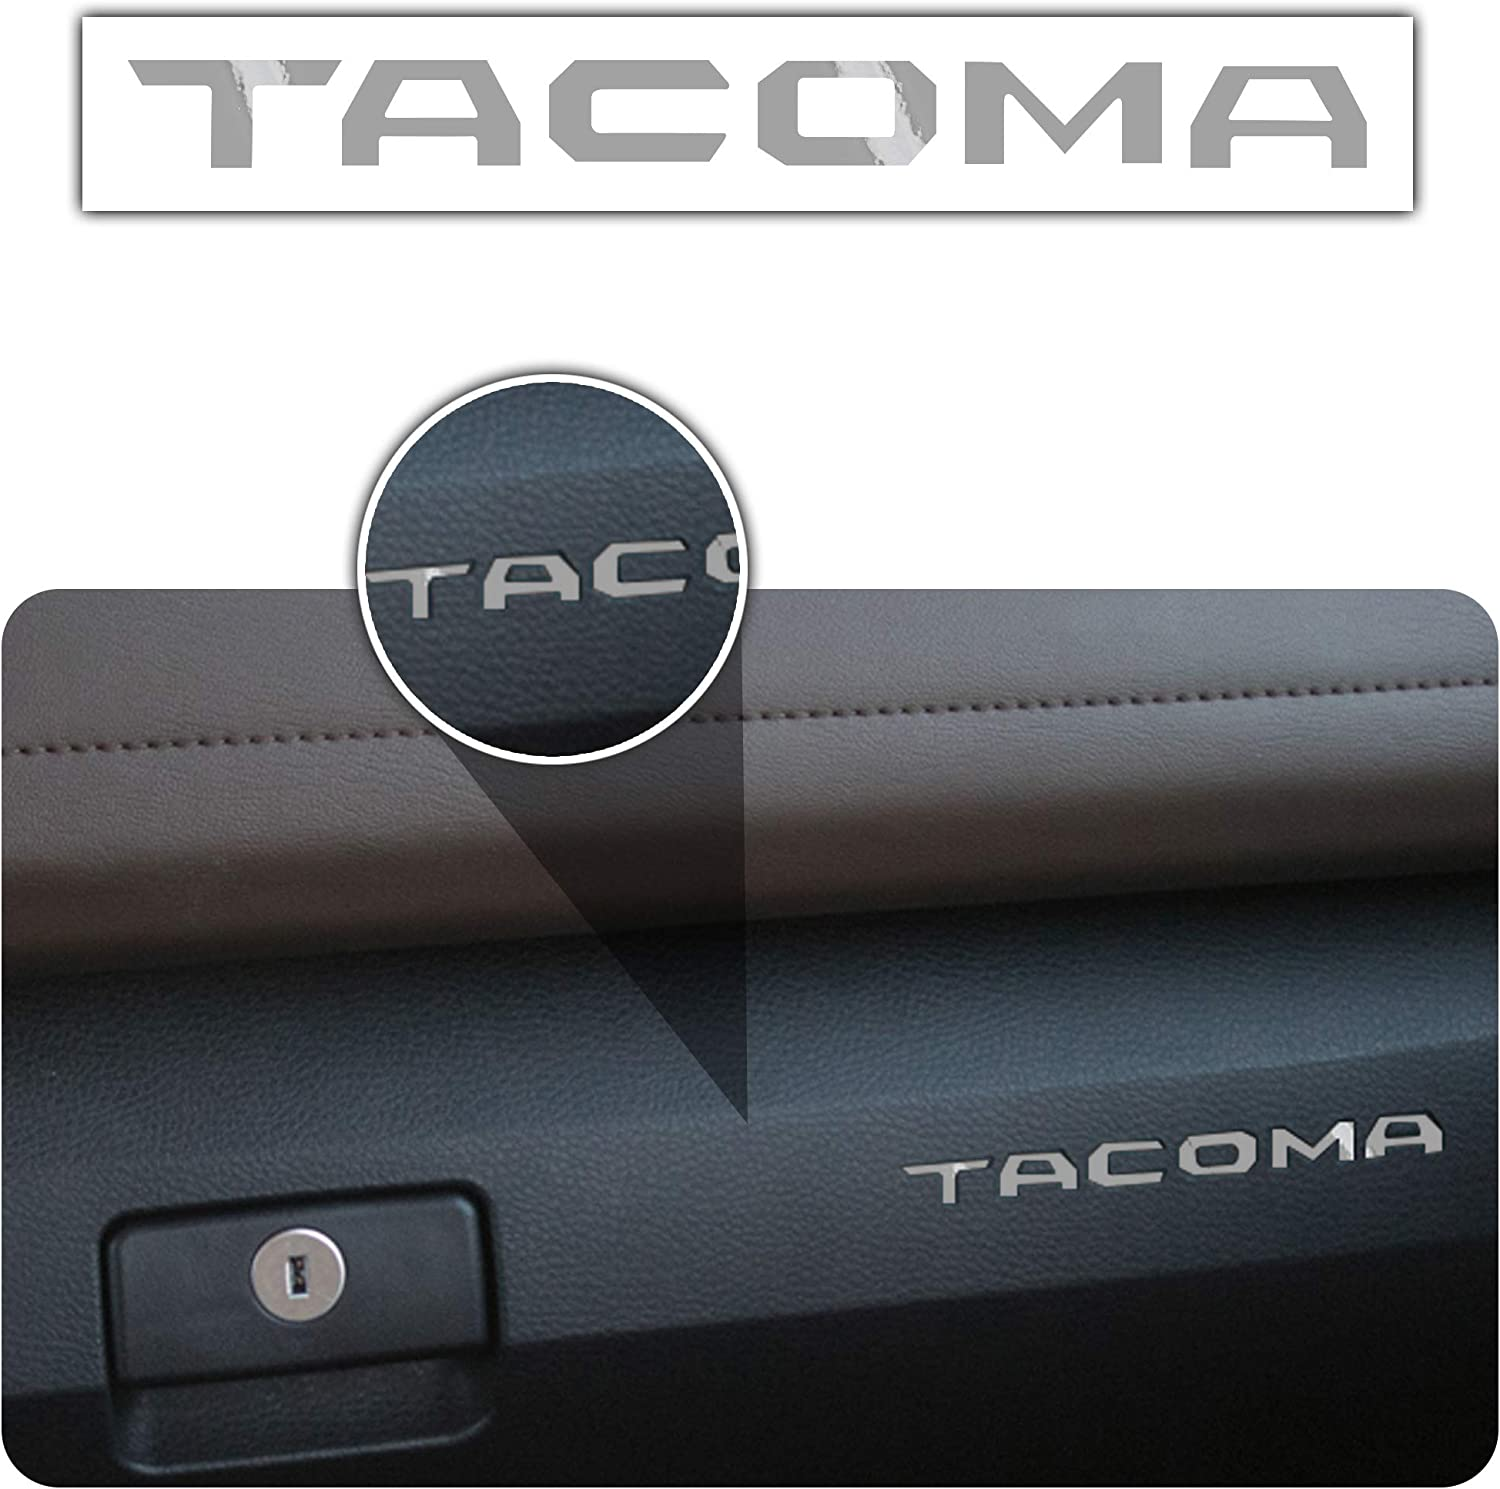 2016-2018 Toyota Tacoma Glove Box Dashboard Vinyl Letter Inserts Decal 2 Pack